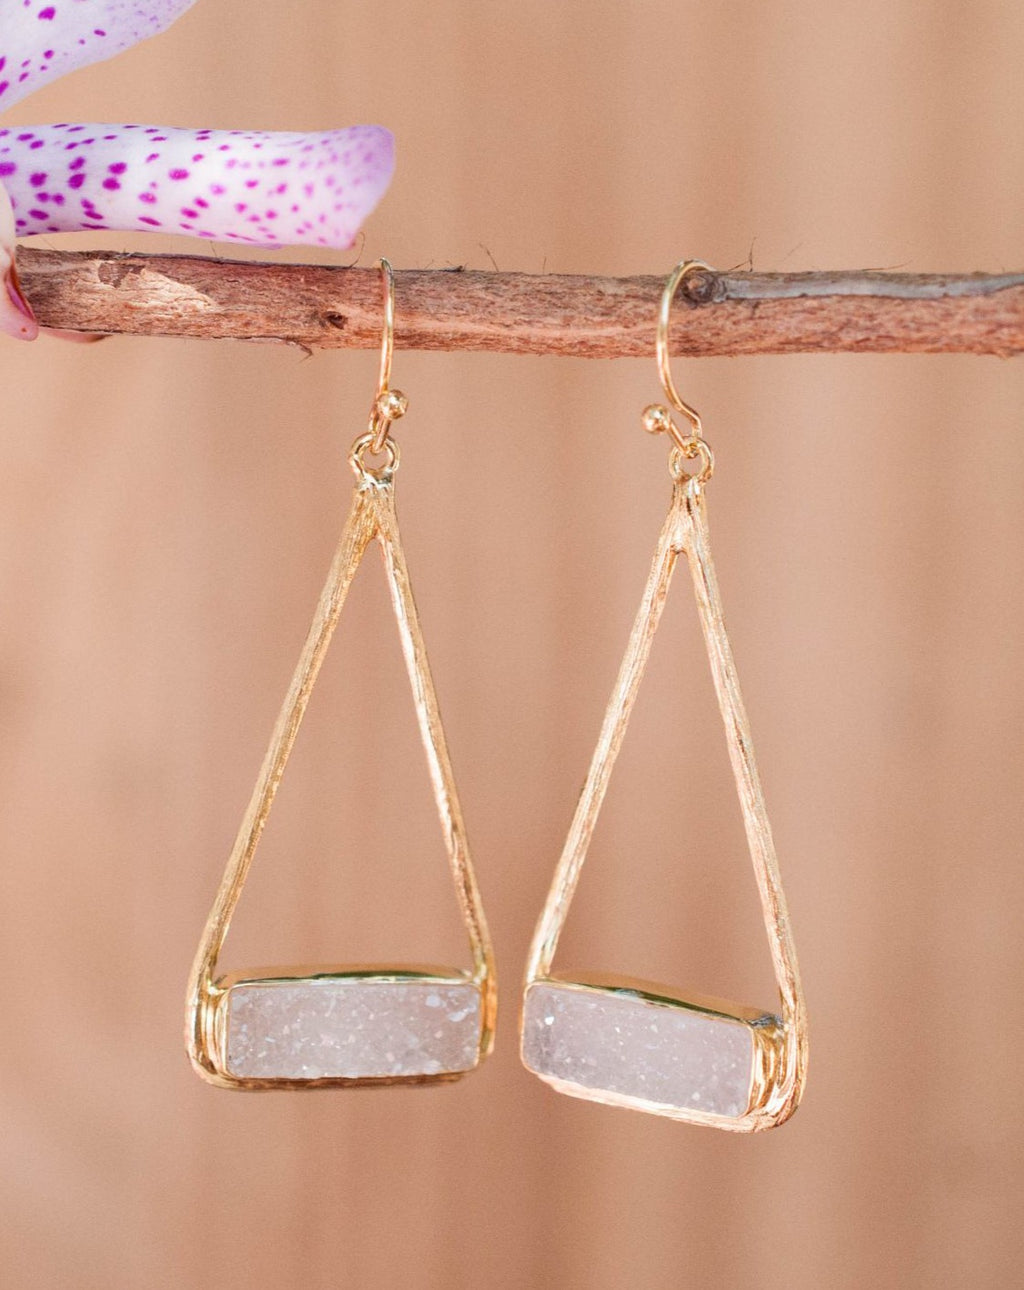 Marina Earrings * White Druzy * Gold Plated 18k or Silver Plated * BJE007A